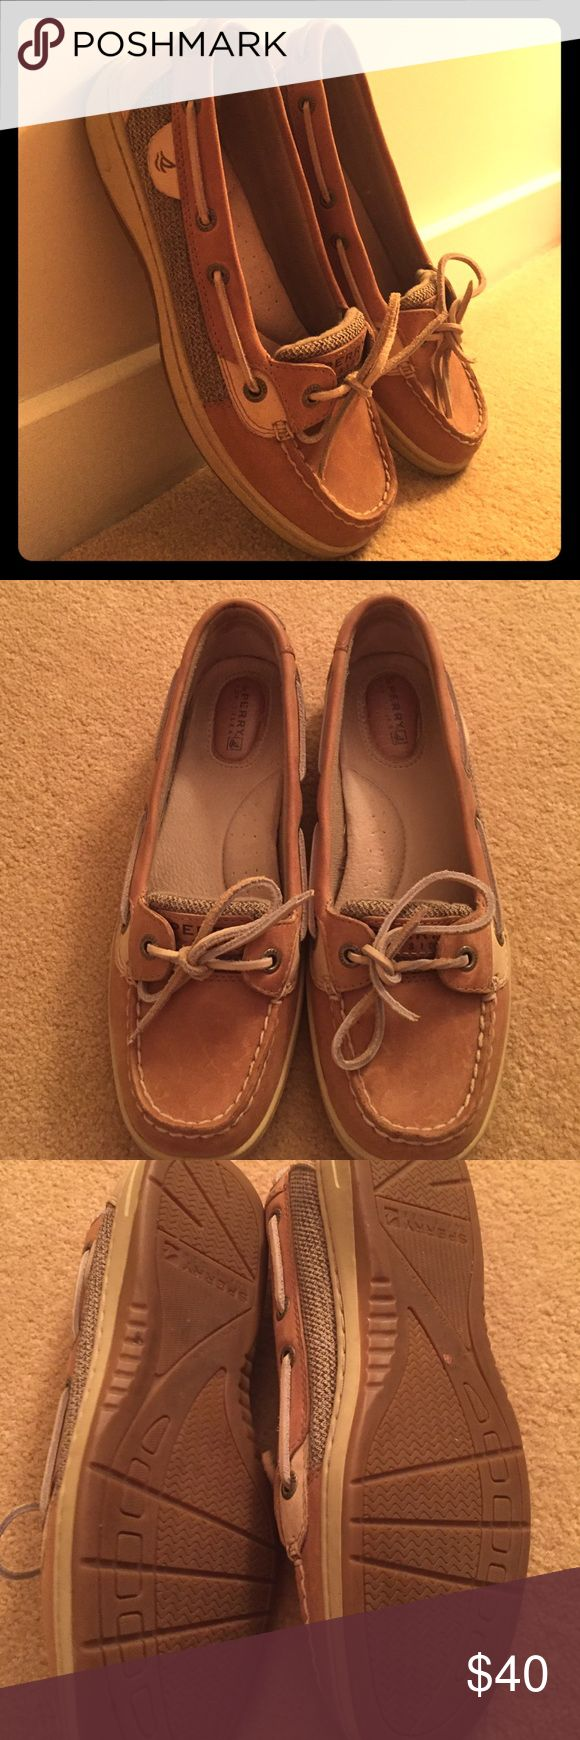 Sperry Angelfish Tan Sperry Top Sider shoes. Worn once - excellent condition. Tan color goes with anything! Comfortable and versatile. Leather upper. No-scuff sole. Medium width. Sperry Top-Sider Shoes Flats & Loafers